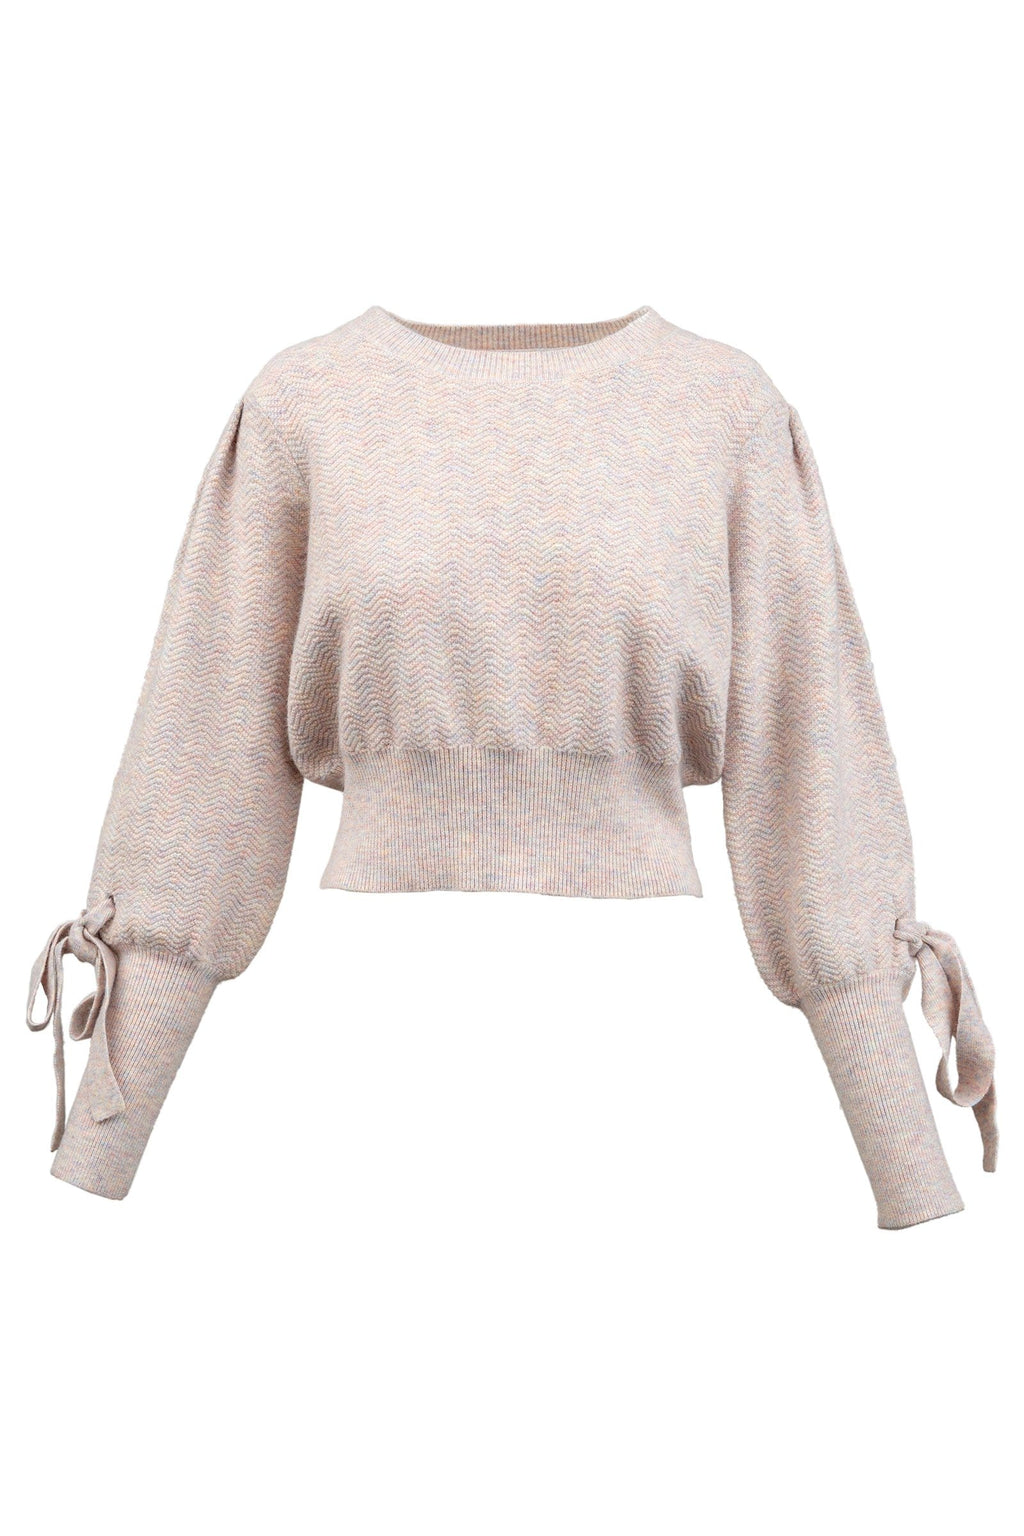 Boxer Pink Bowed Sweater for women by J.ING